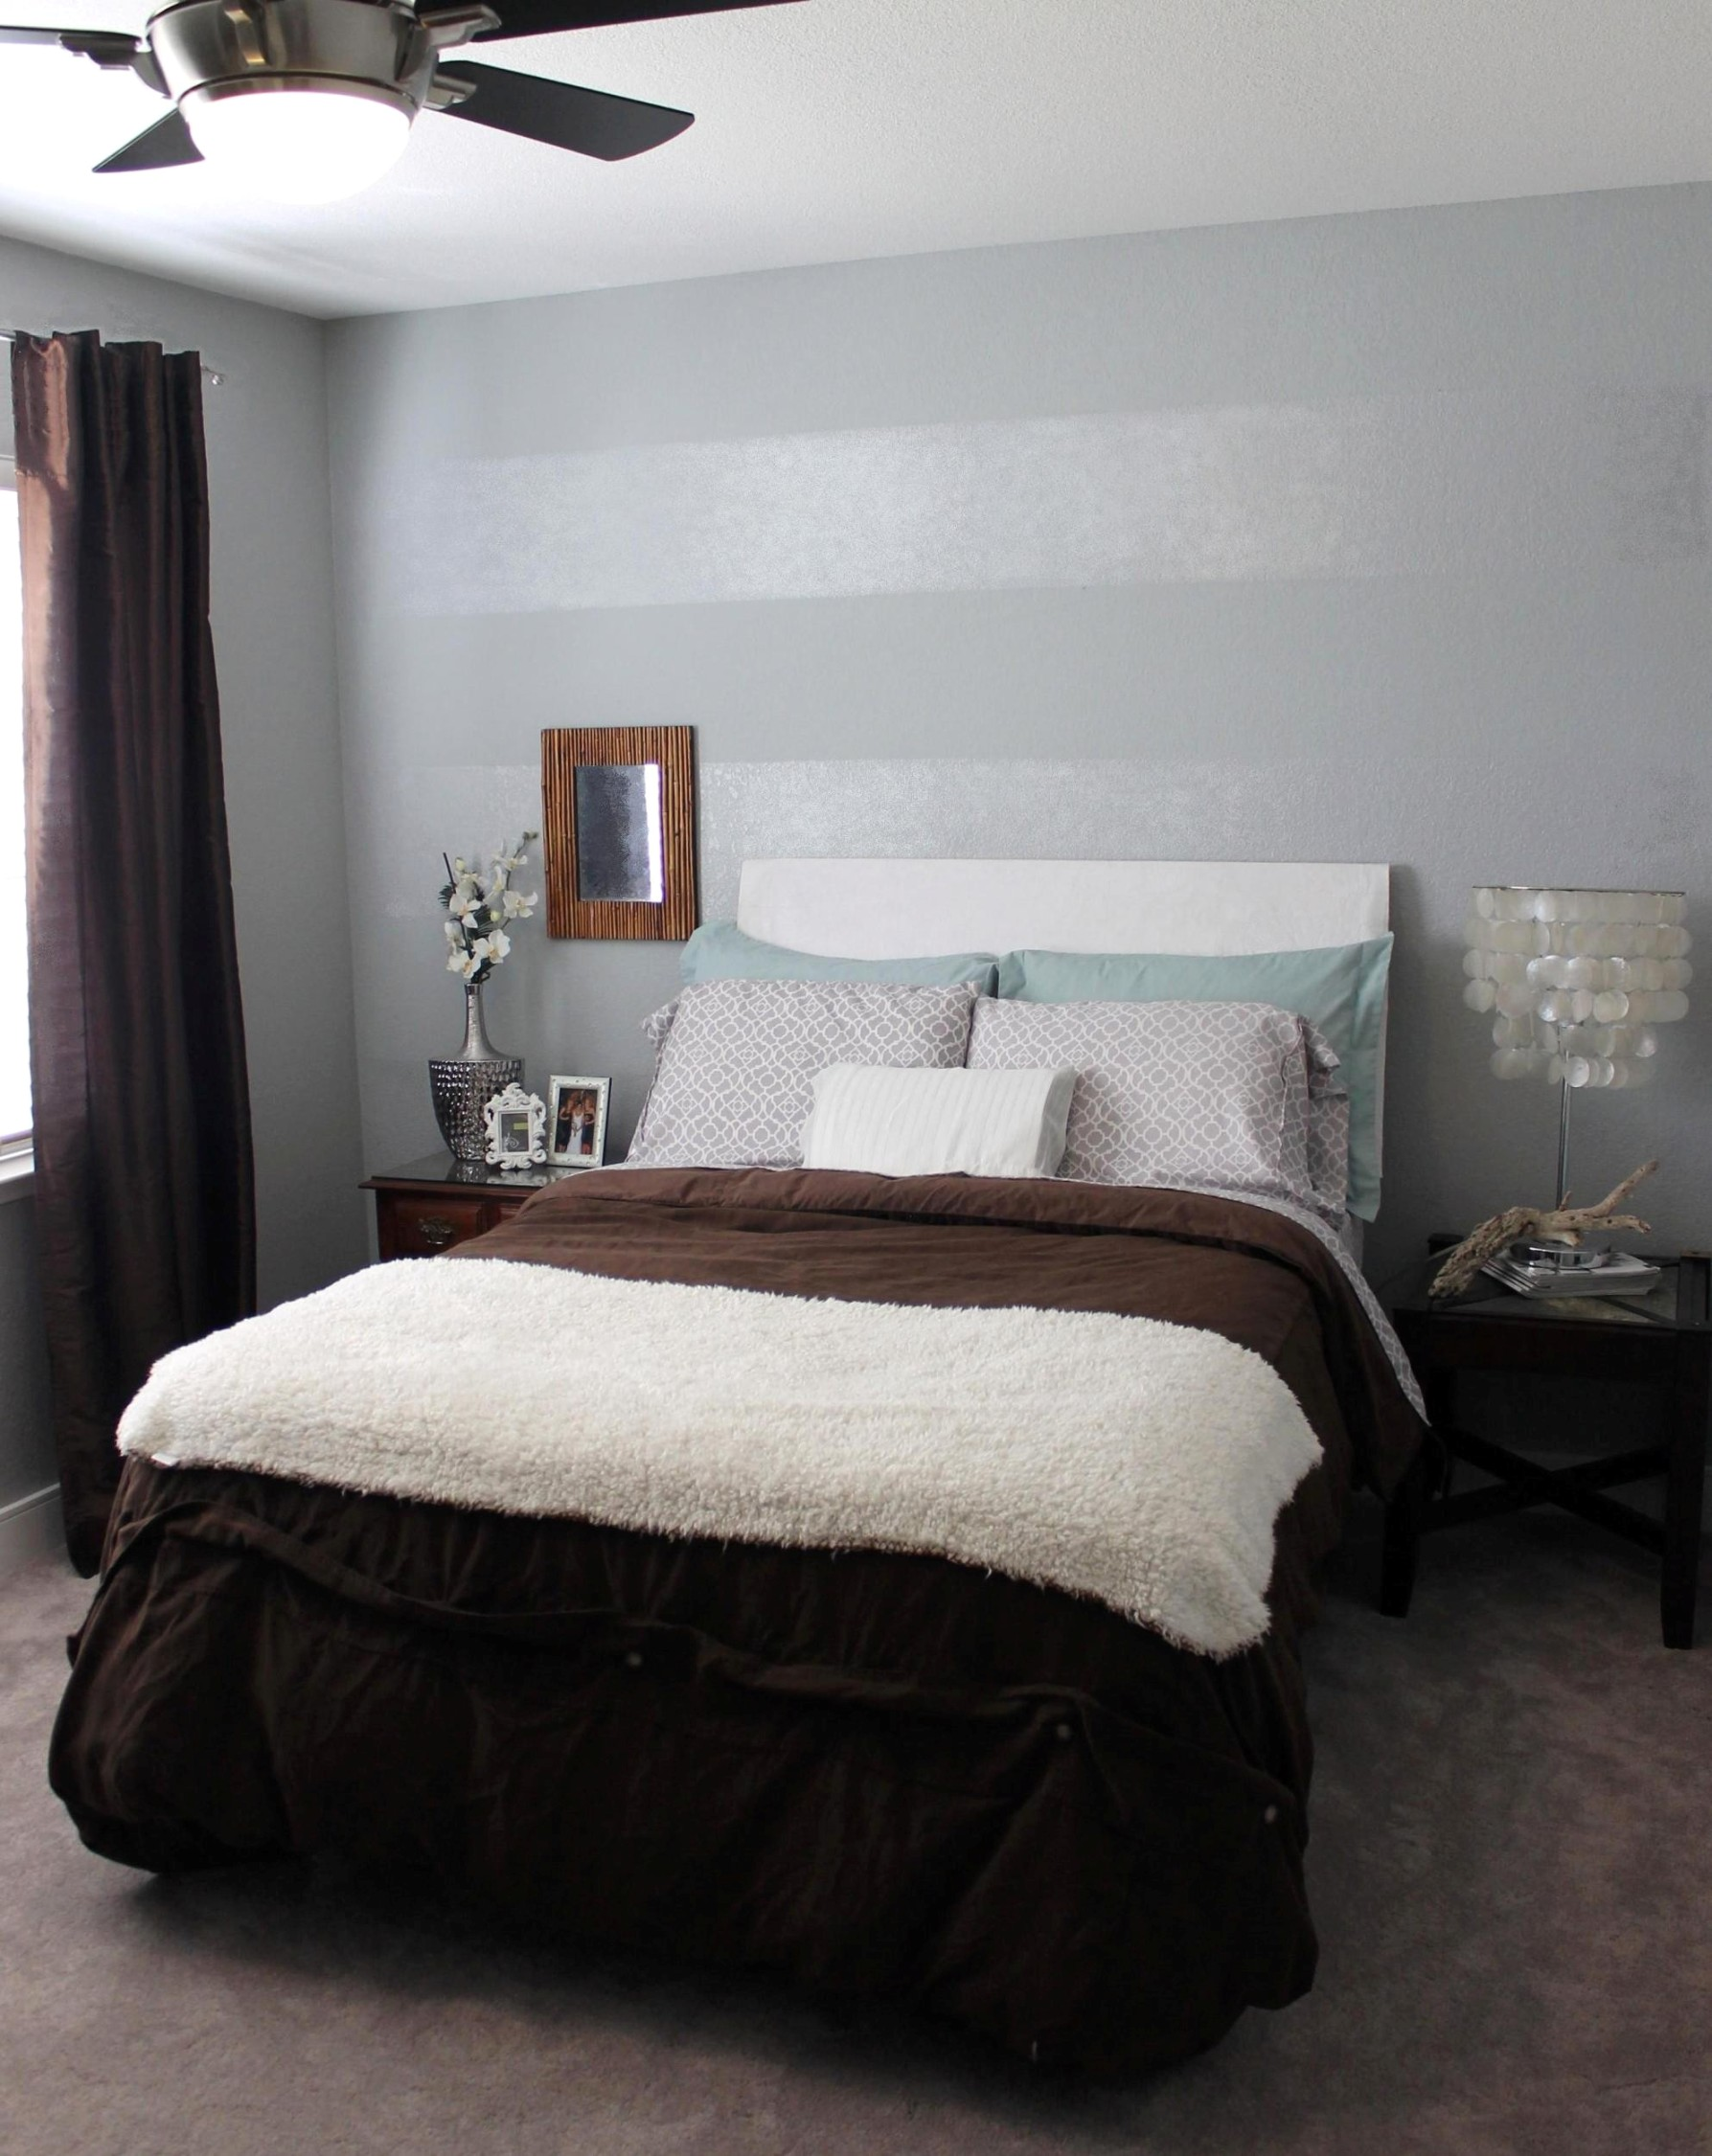 Tone on Tone Striped Accent Wall mrs the misc 1787x2251